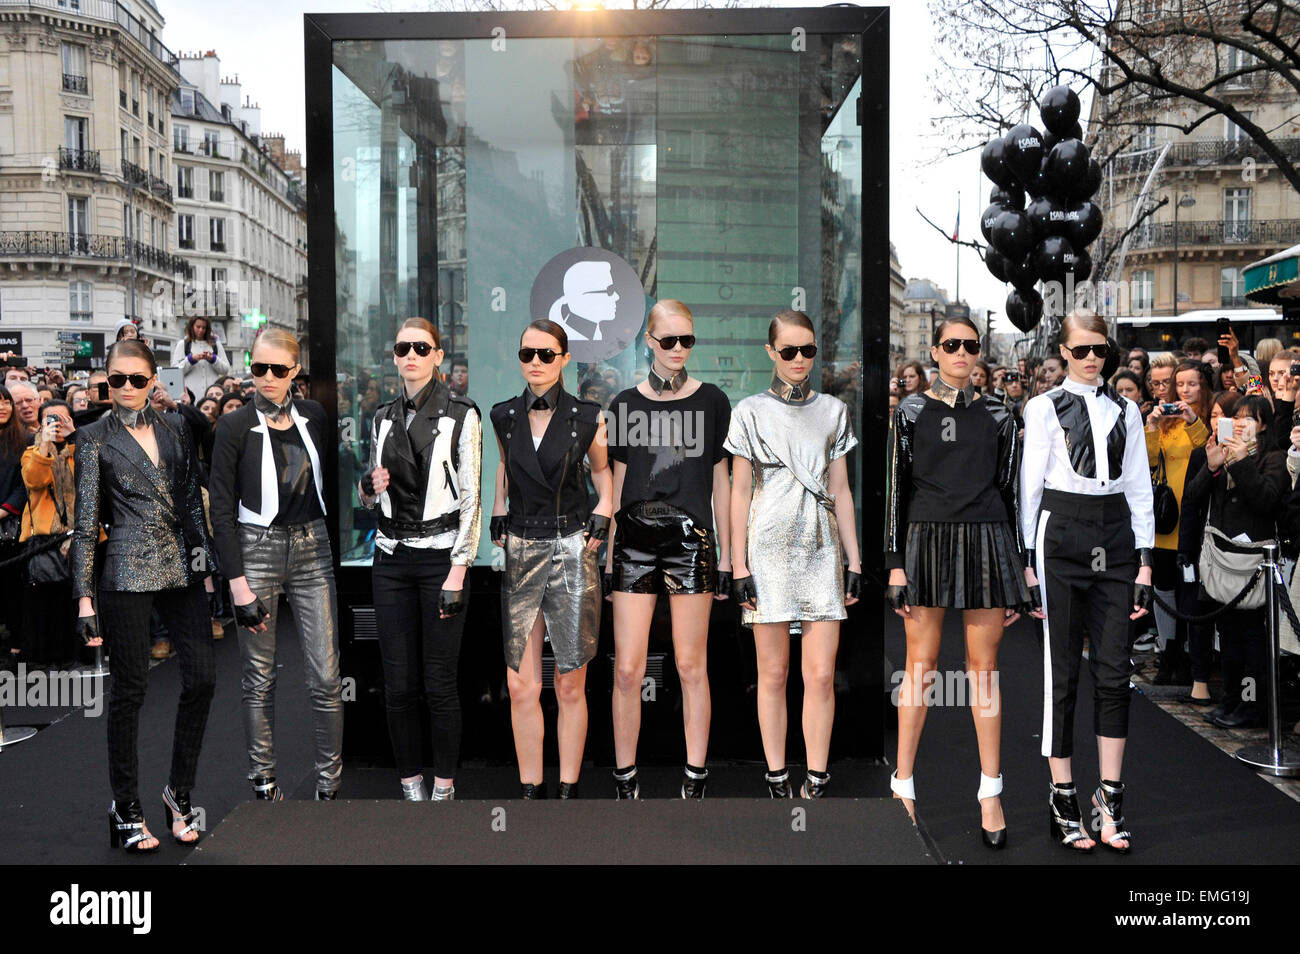 3480b45e5037 PARIS NET A PORTER MODELS PRESENT THE FIRST ONLINE COLLECTION OF KARL  LAGERFELD SPRING SUMMER 2012 IN COLLABORATION WITH THE ONLINE RETAILER NET  A PORTER